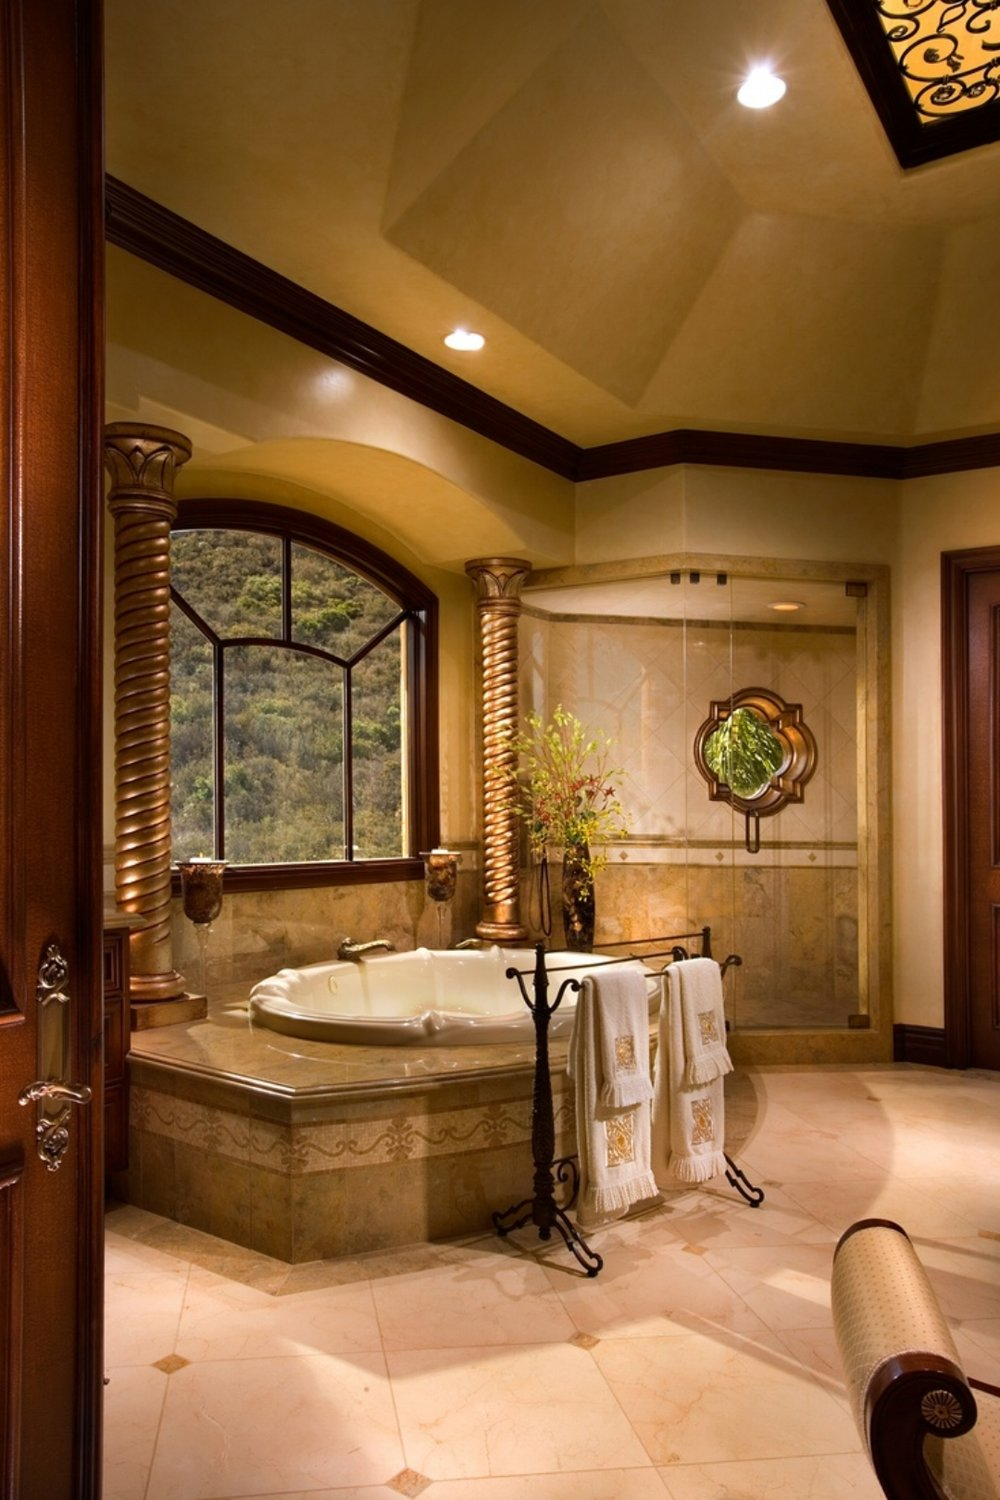 Luxurious Bathroom Design photo - 8